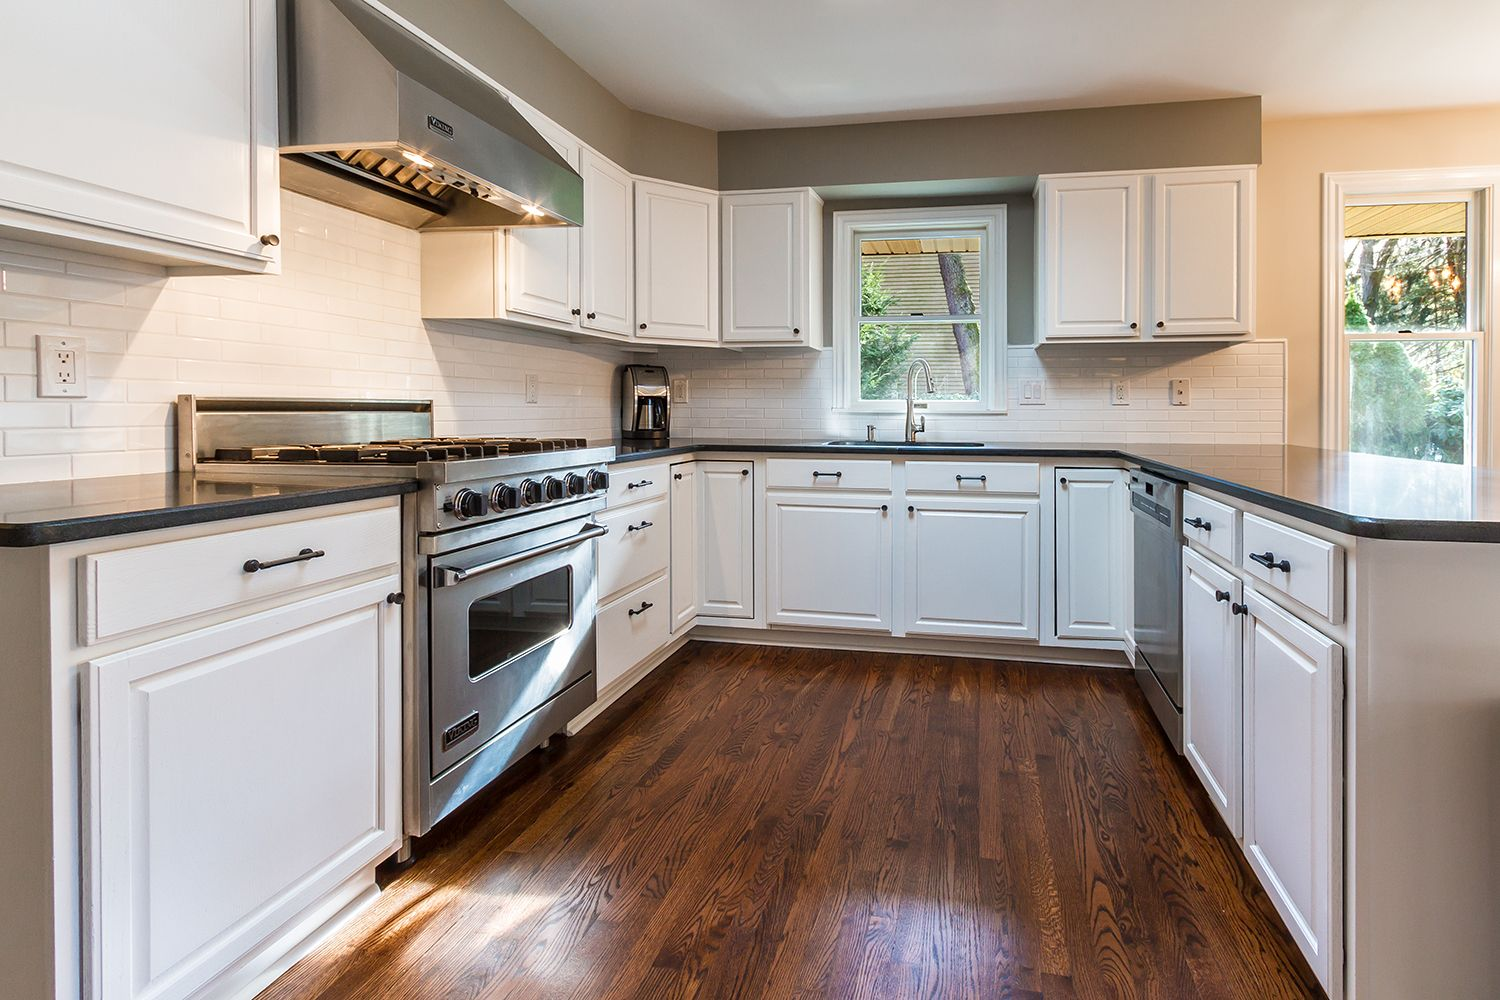 Cherry Hill Painting Knows How To Make A Kitchen Look Great! Just Look How  Beautiful